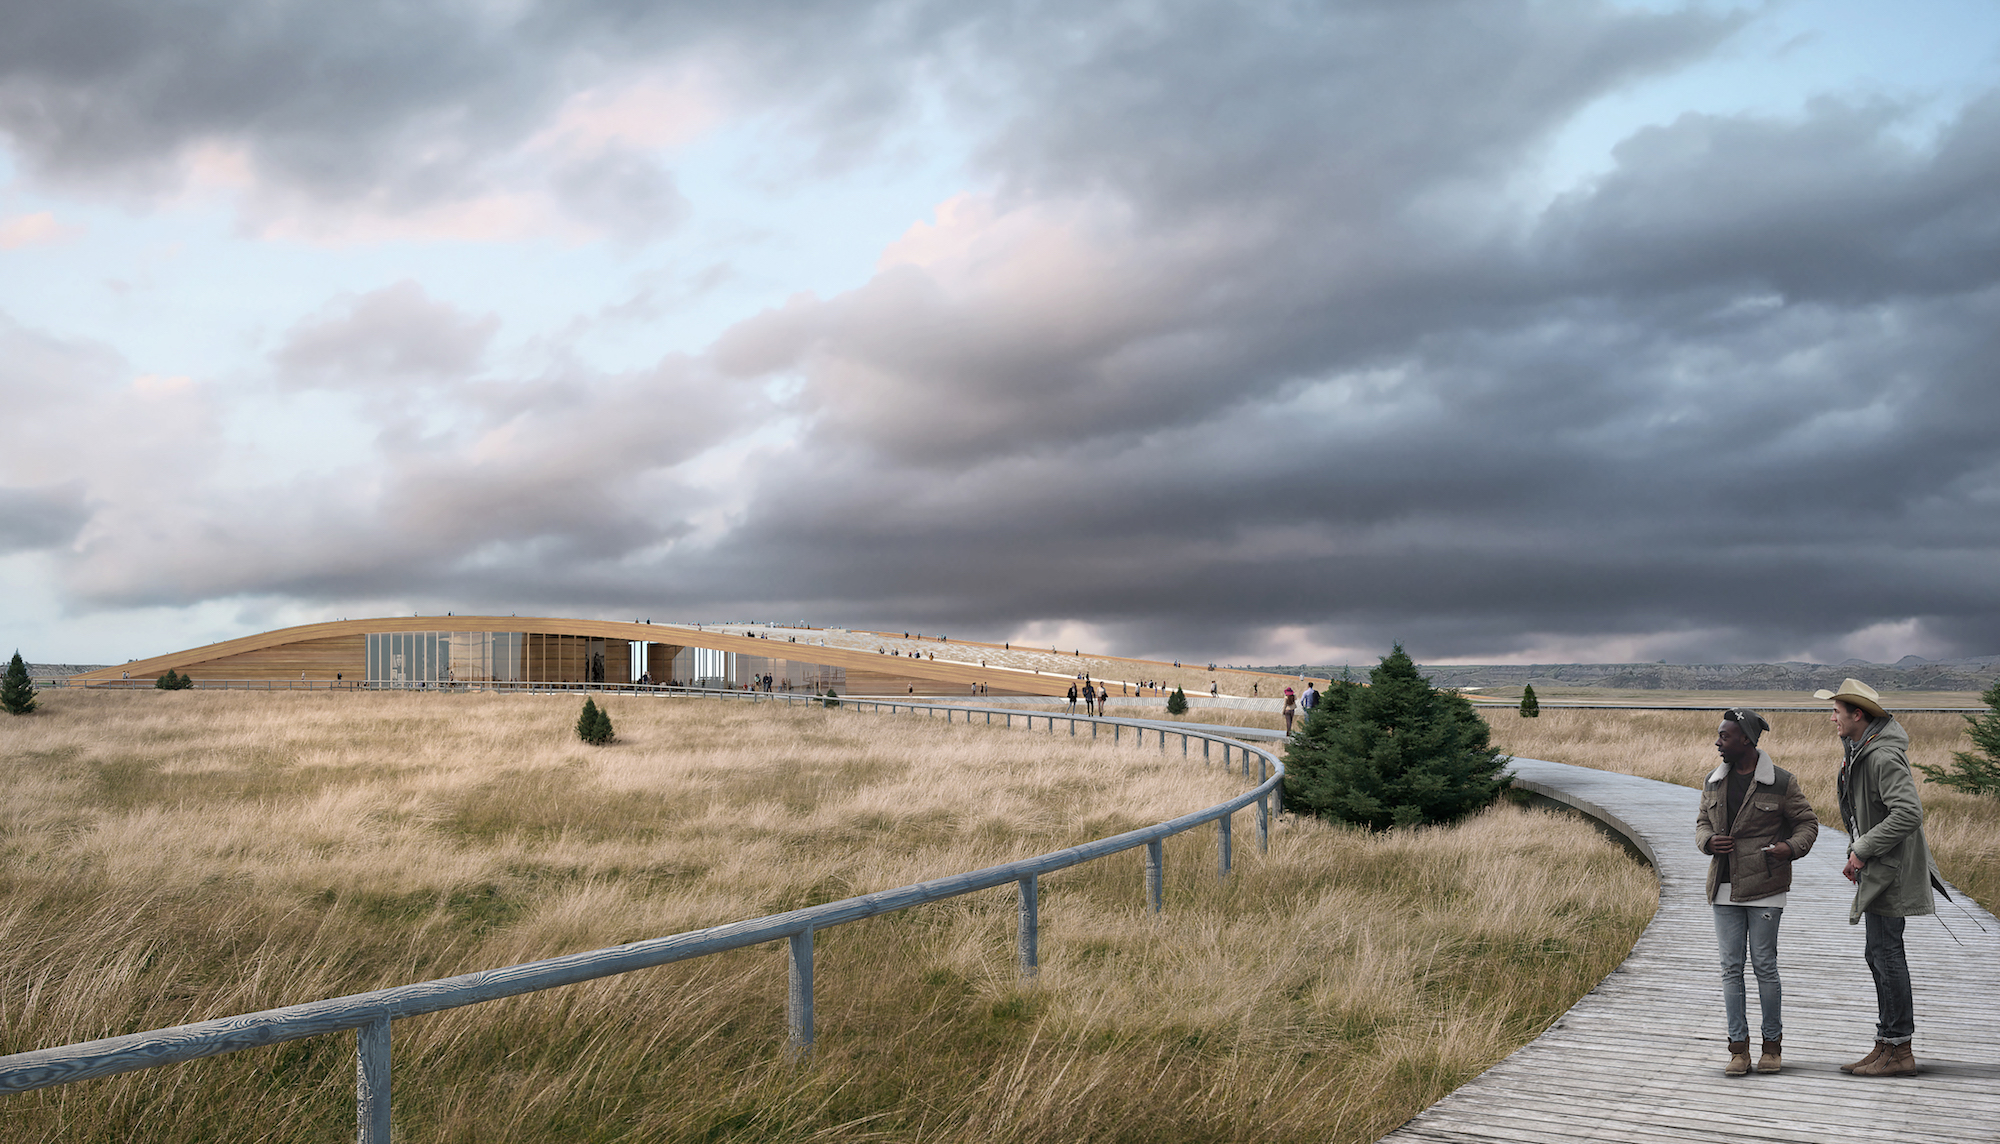 a boardwalk in the prairie showing the Theodore Roosevelt Presidential Library